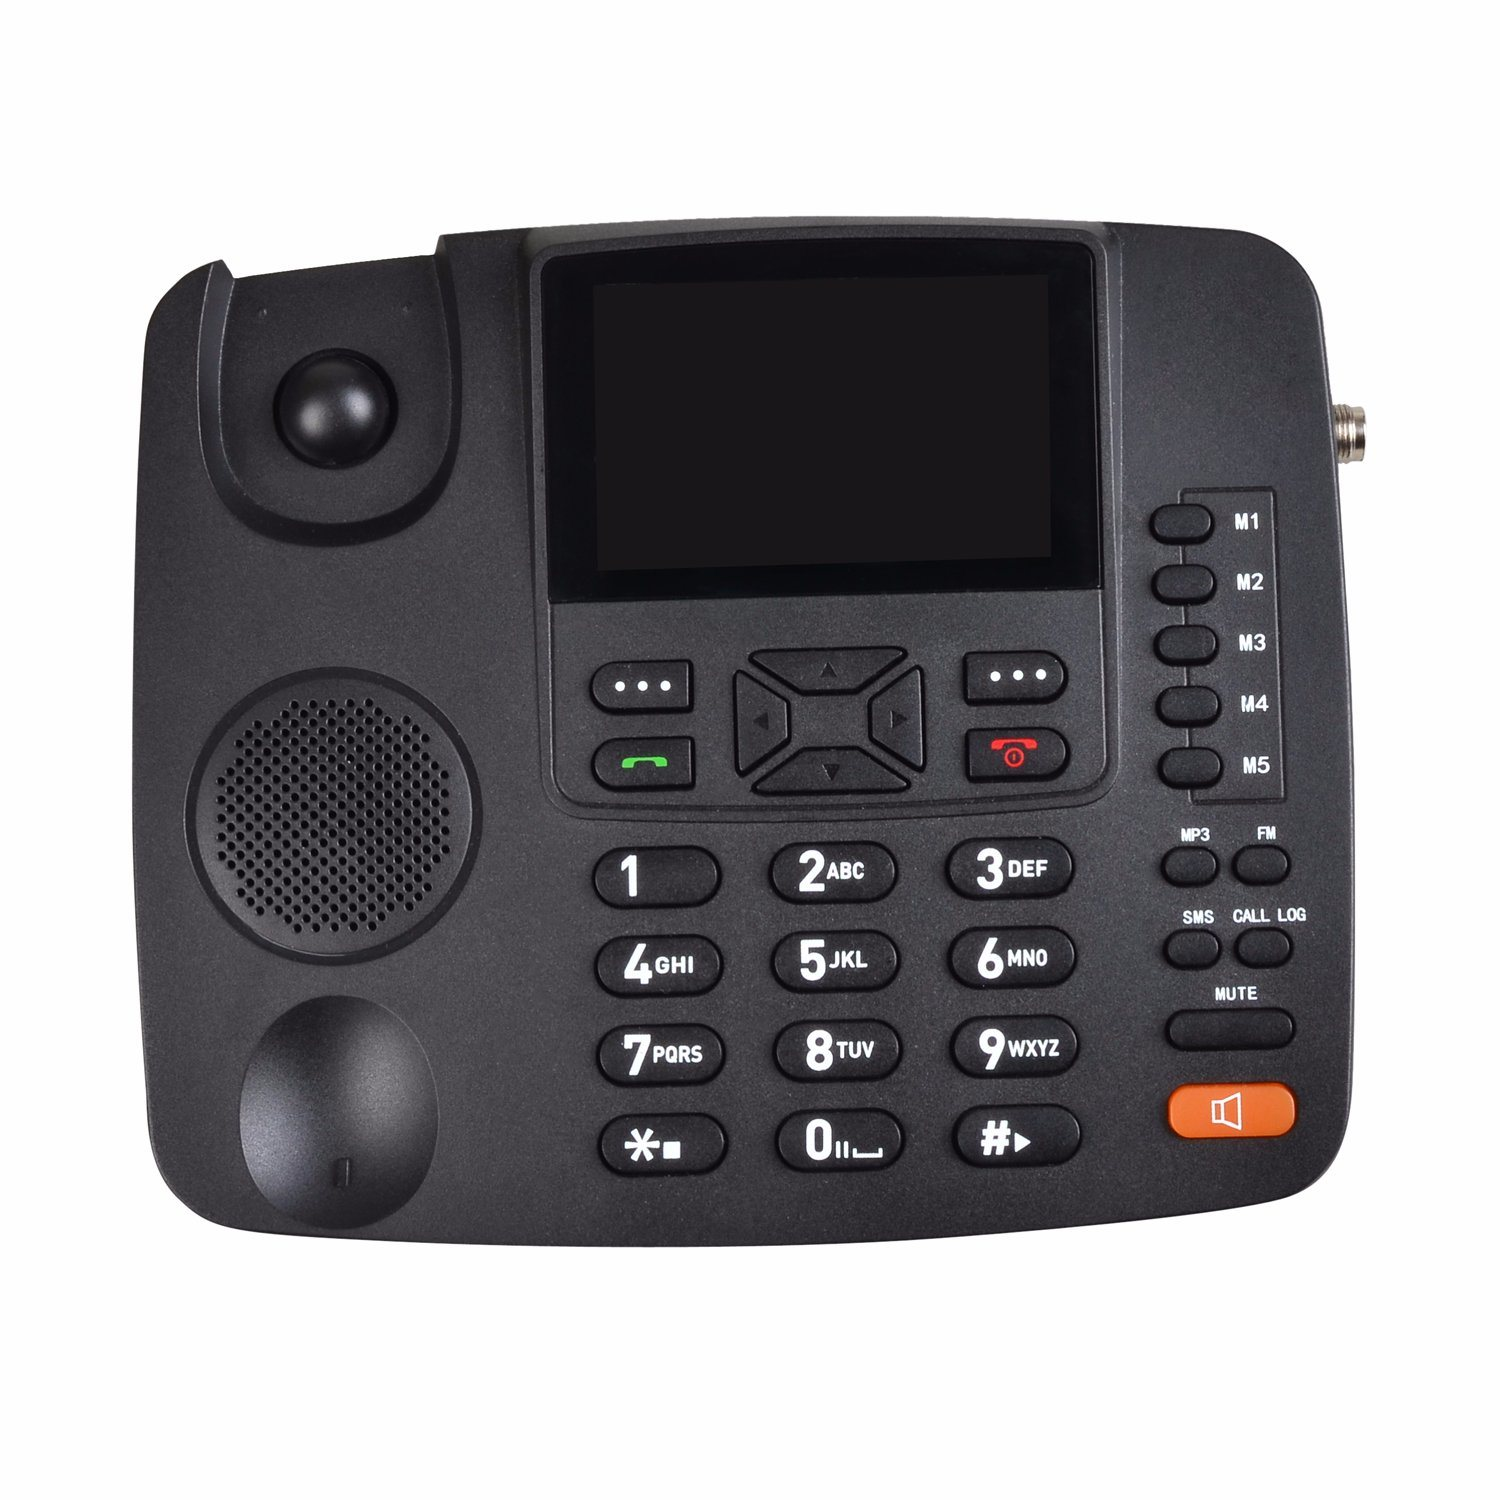 Back up Battery Desktop Phone 2g Wireless Phone Dual SIM GSM Fwp G659 Supports FM Radio pictures & photos